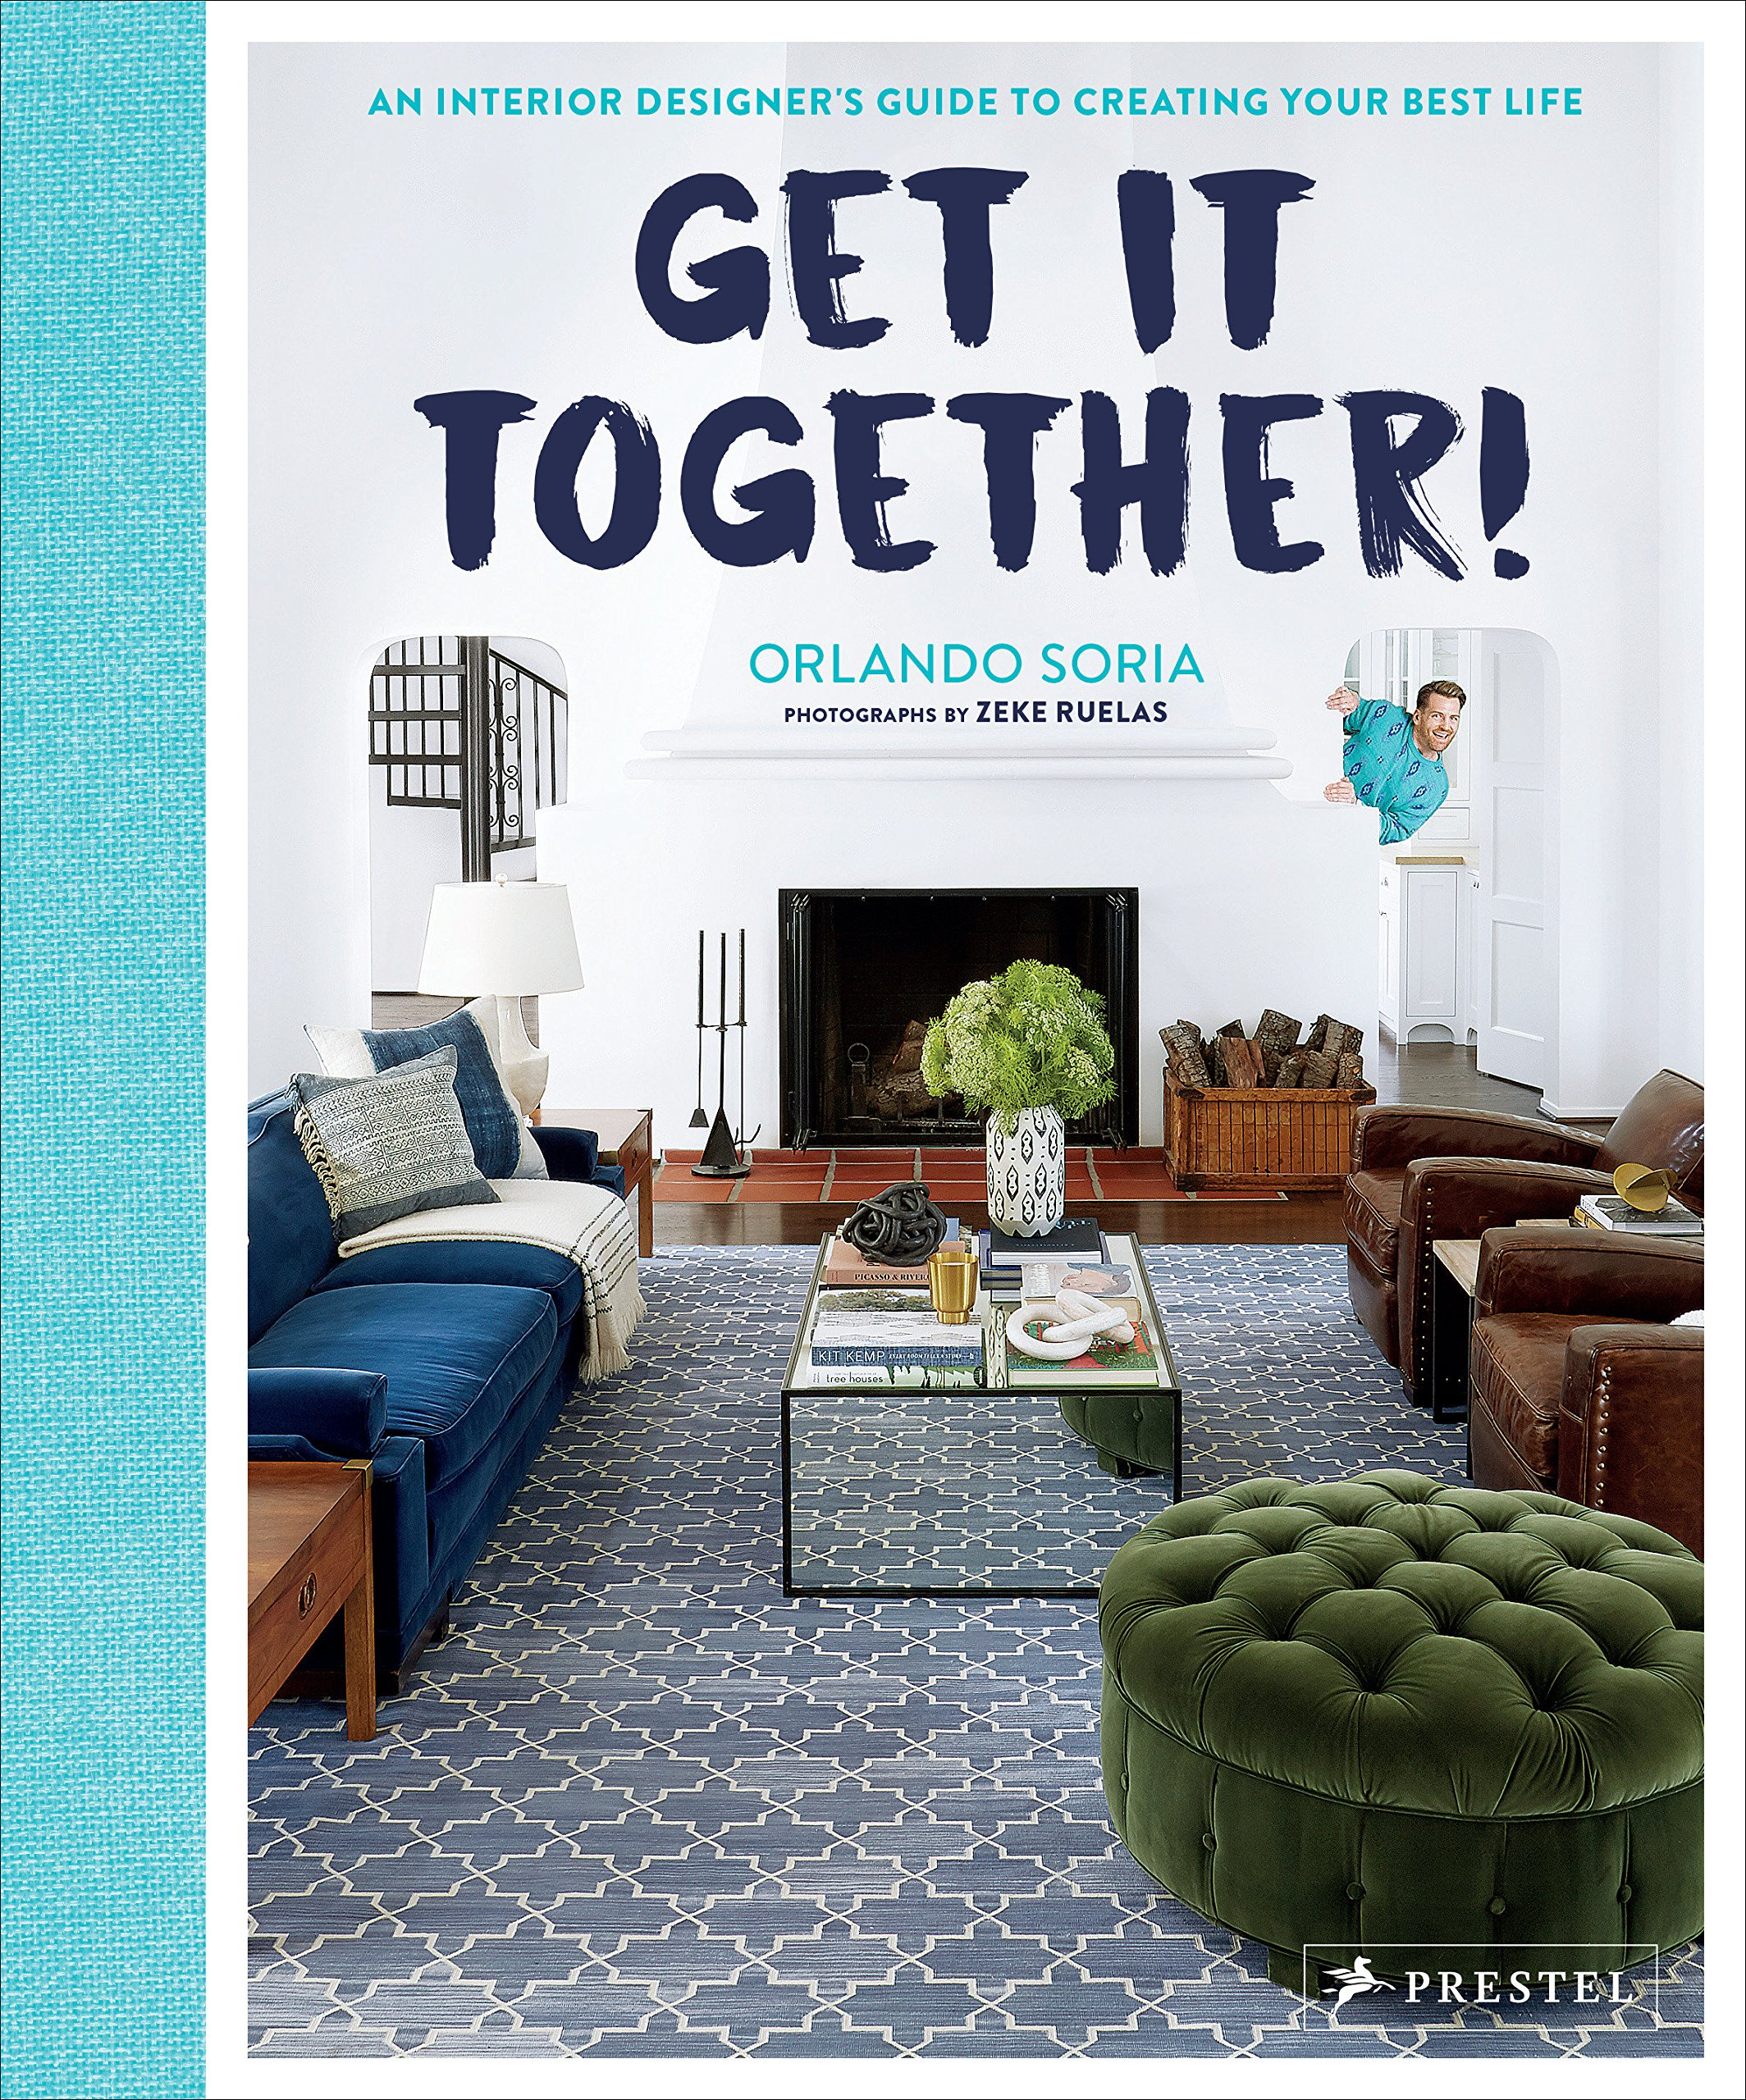 Get It Together!: An Interior Designer's Guide to Creating Your Best Life by Prestel